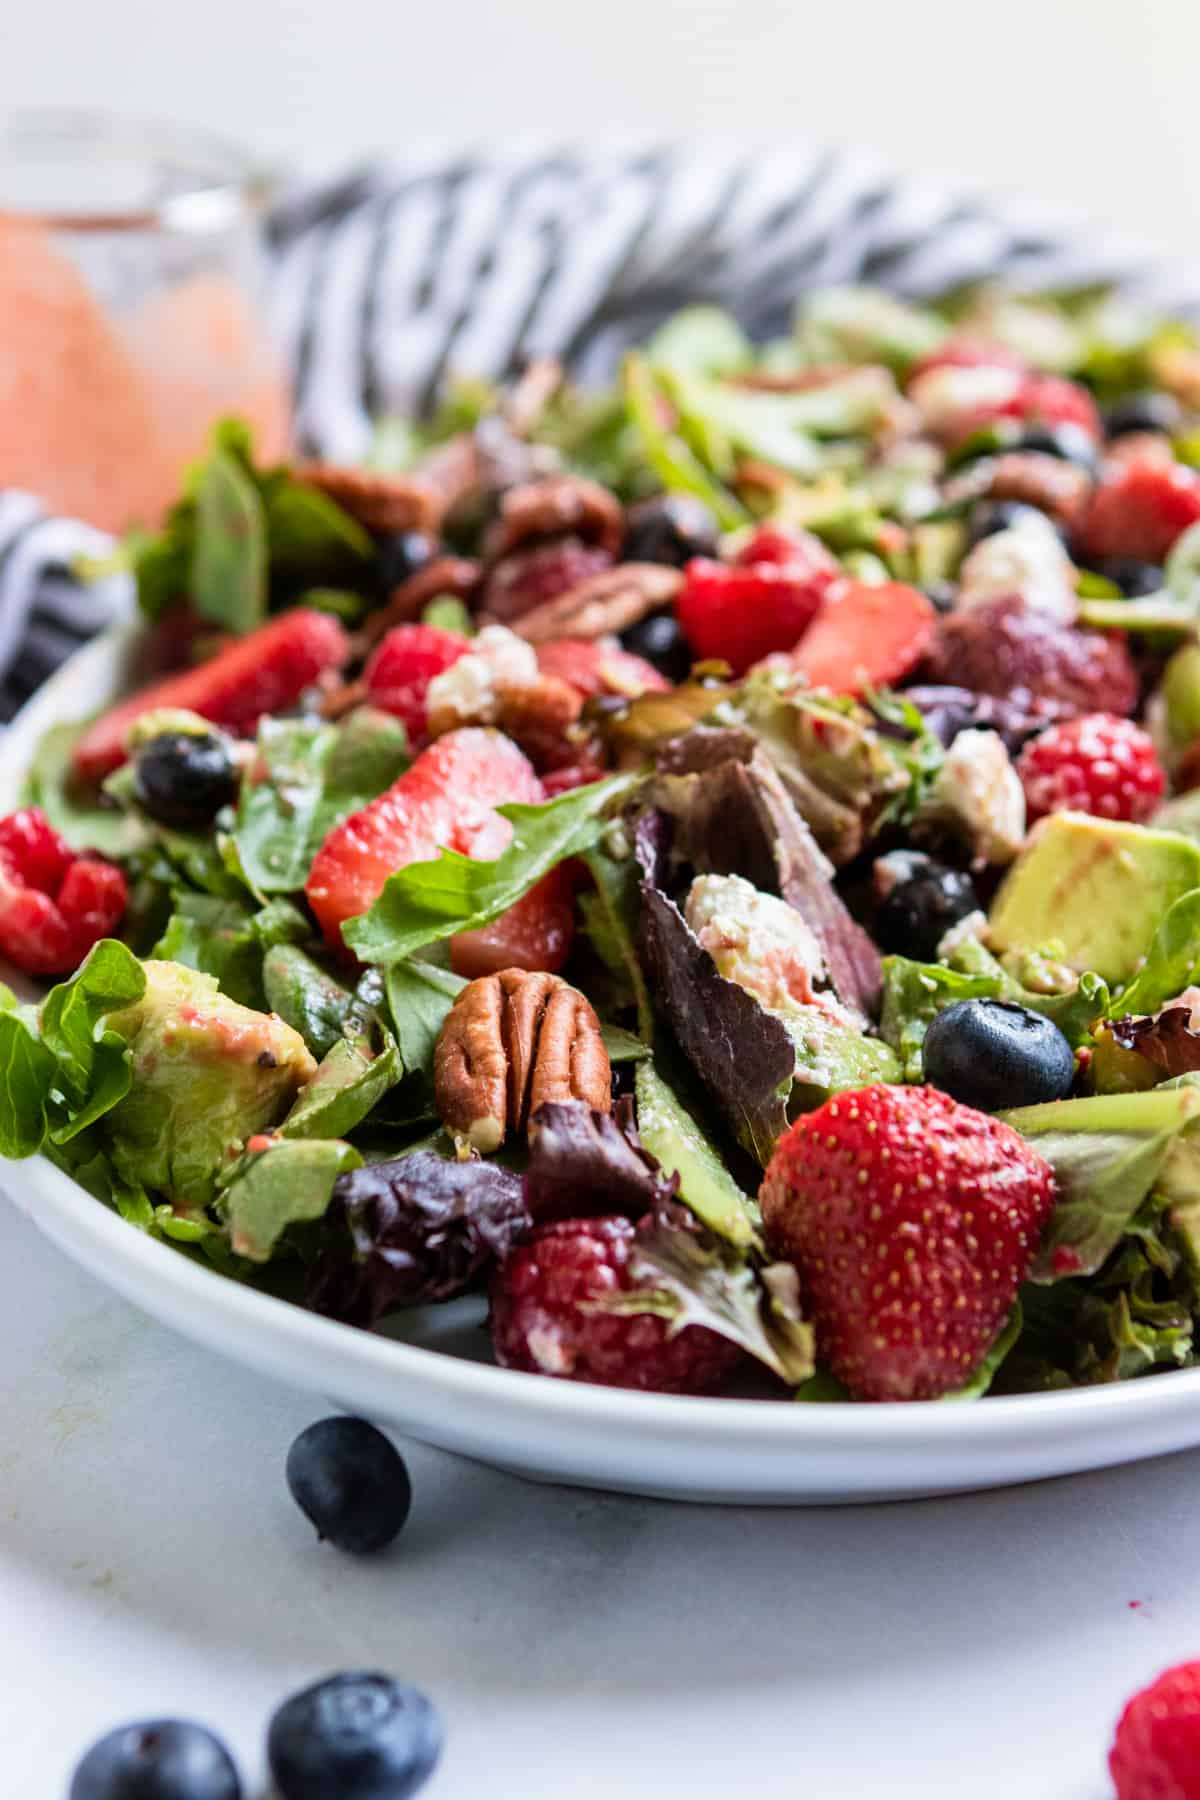 Mixed green salad with berries on white plate with dressing.